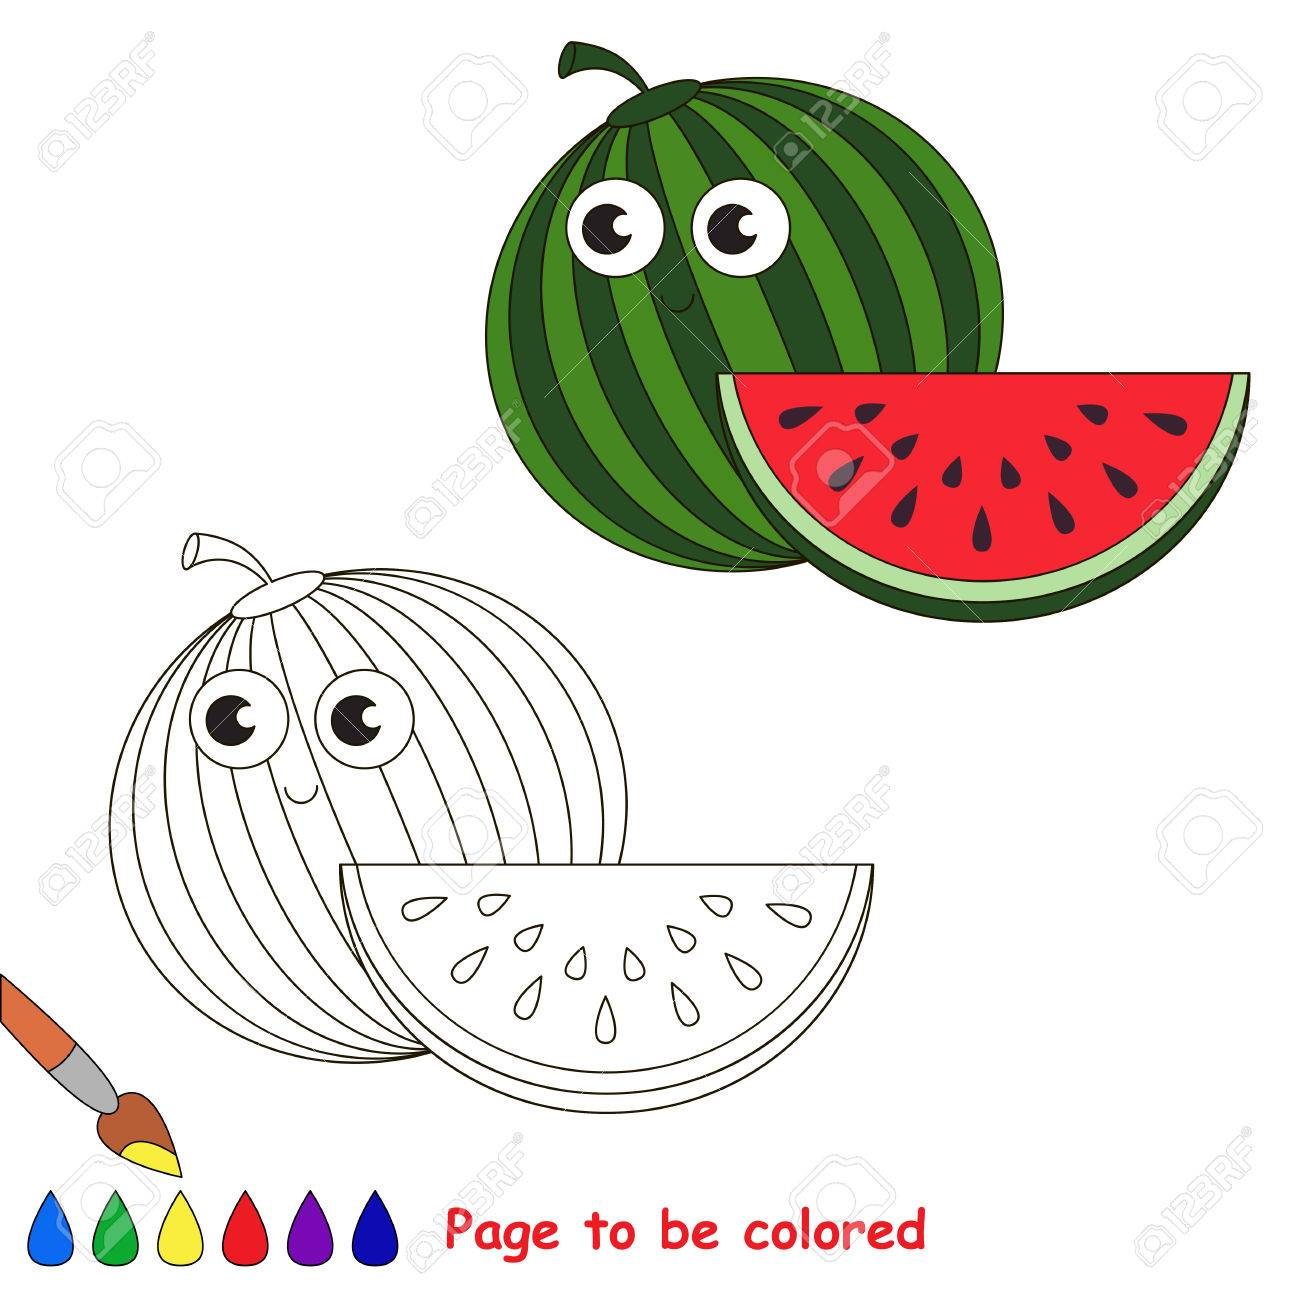 Funny Watermelon To Be Colored. Coloring Book To Educate Kids ...